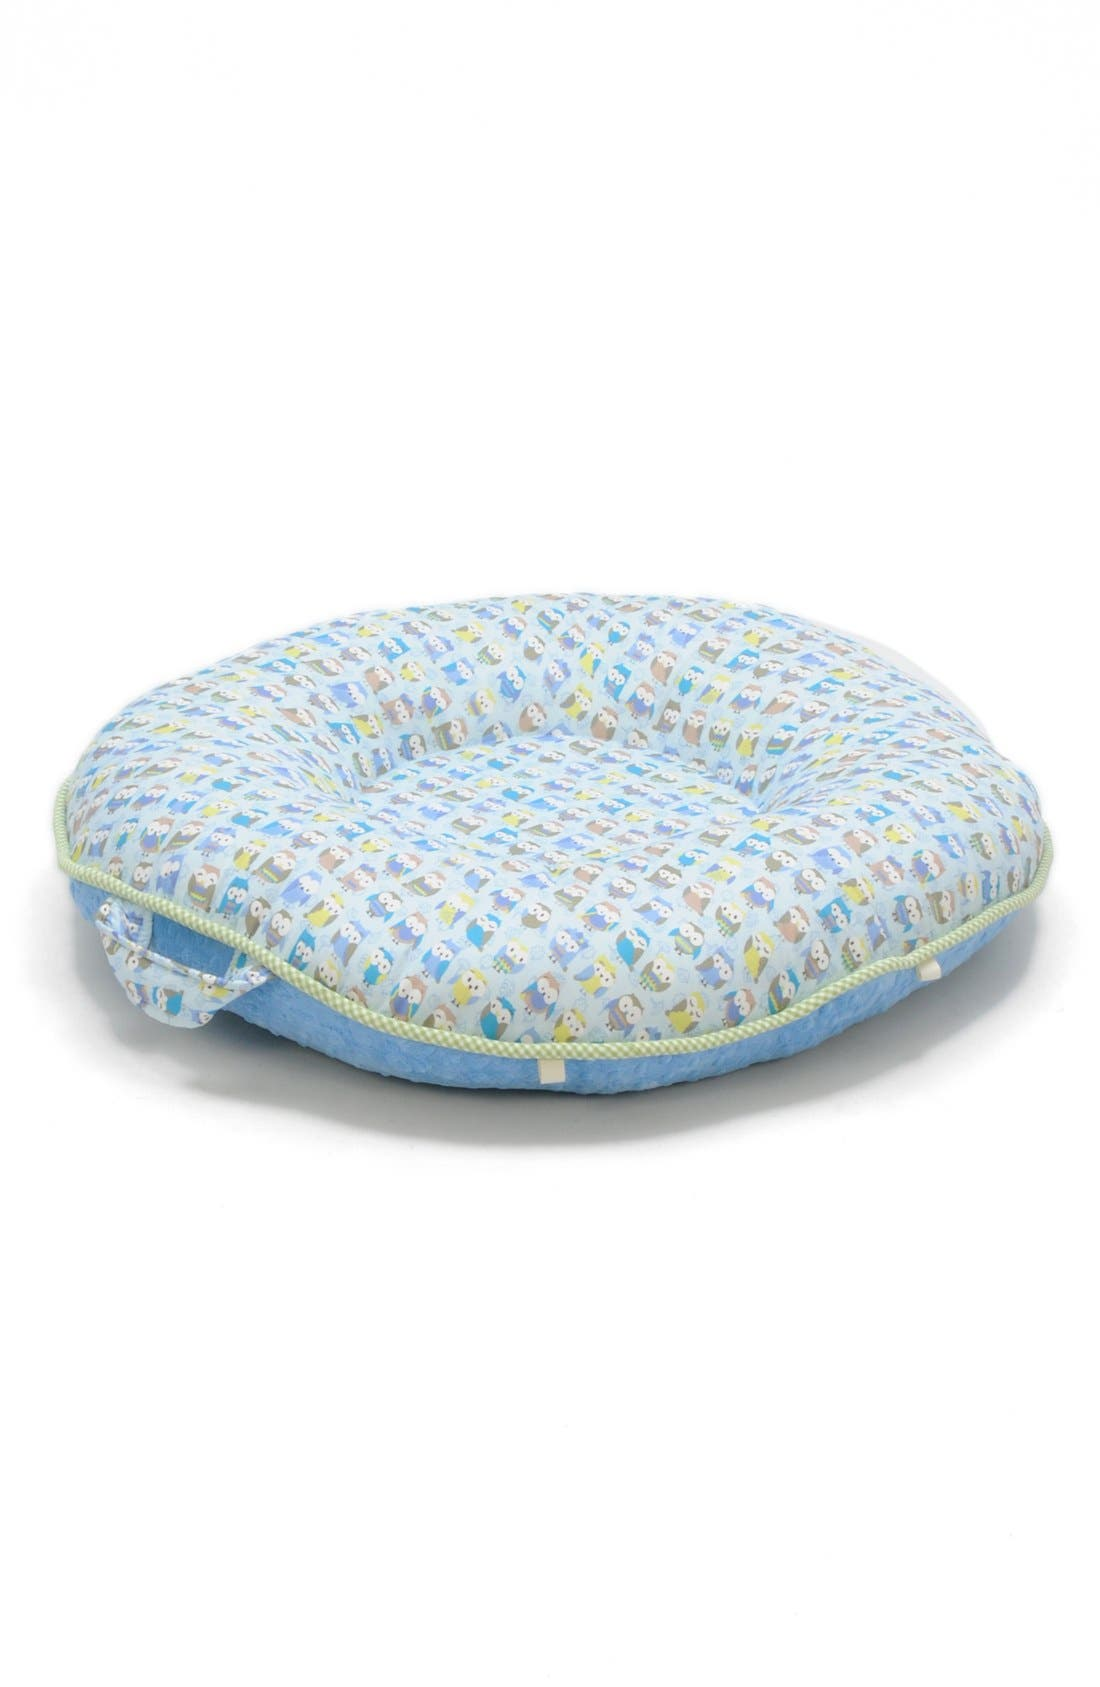 Alternate Image 2  - Pello 'Pello - Hoo Loves Ya Boy' Portable Floor Pillow (Baby)